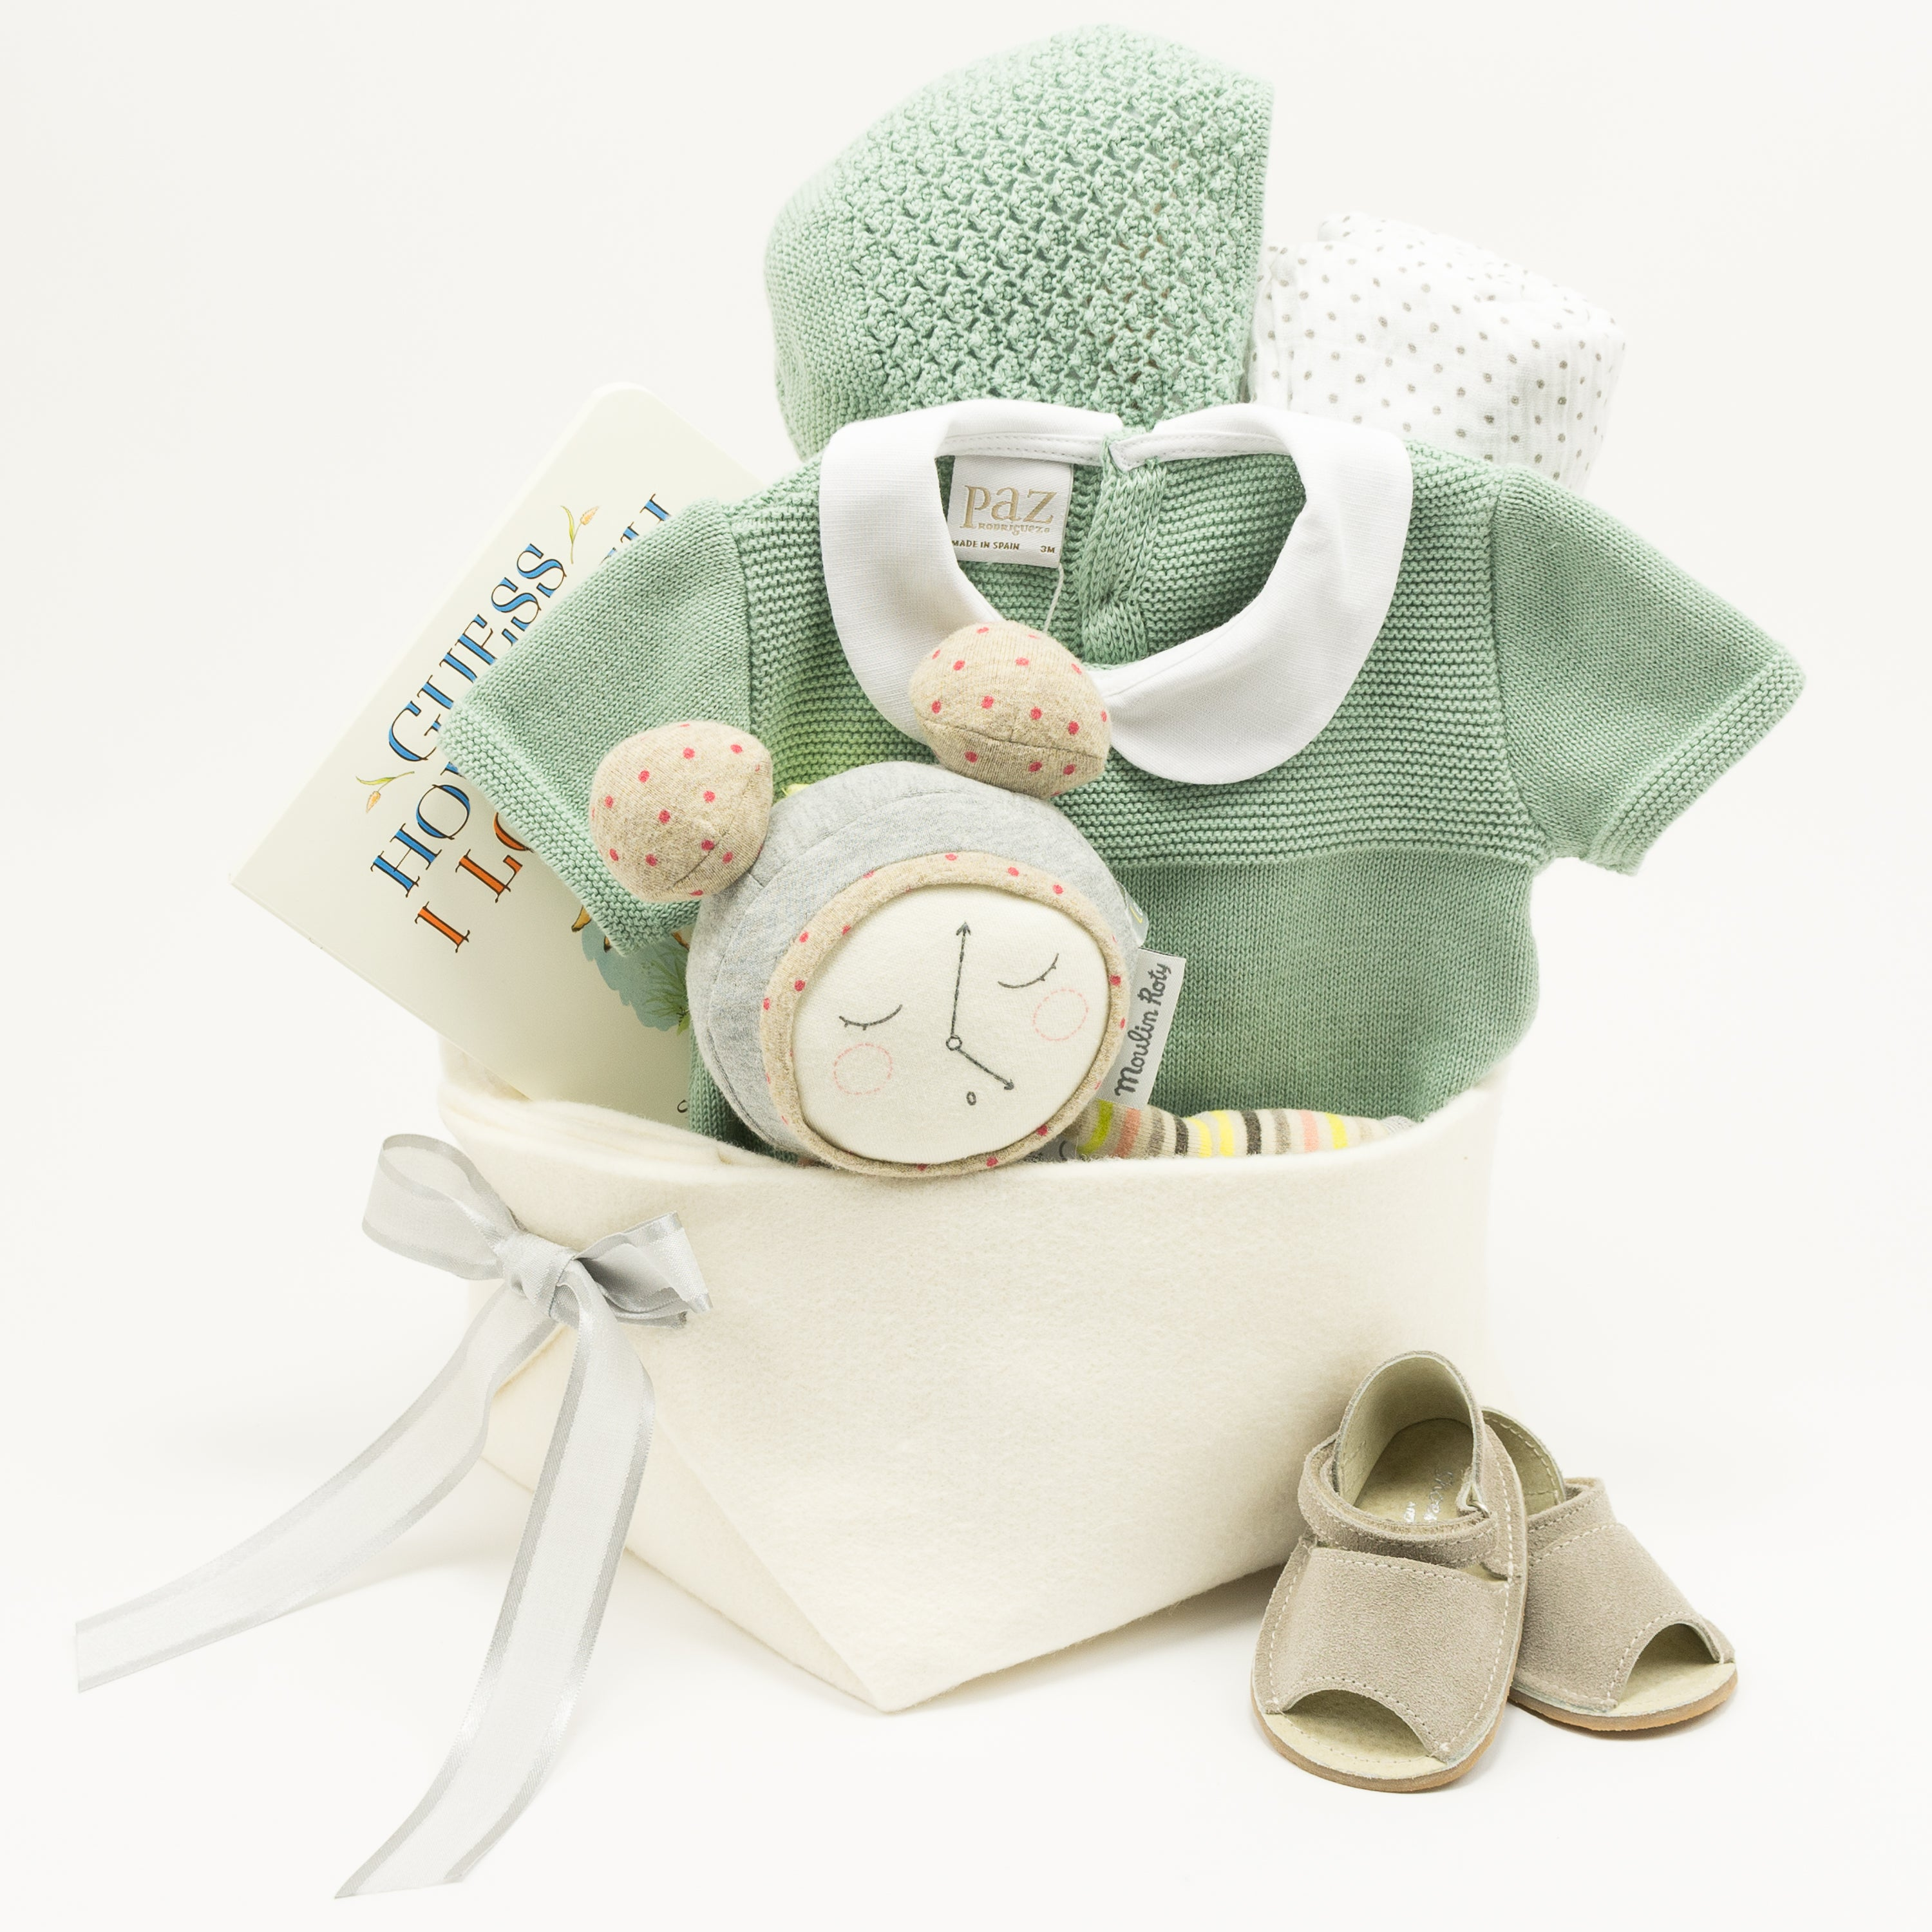 Best Corporate Baby Gift Baskets featuring Paz Rodriguez